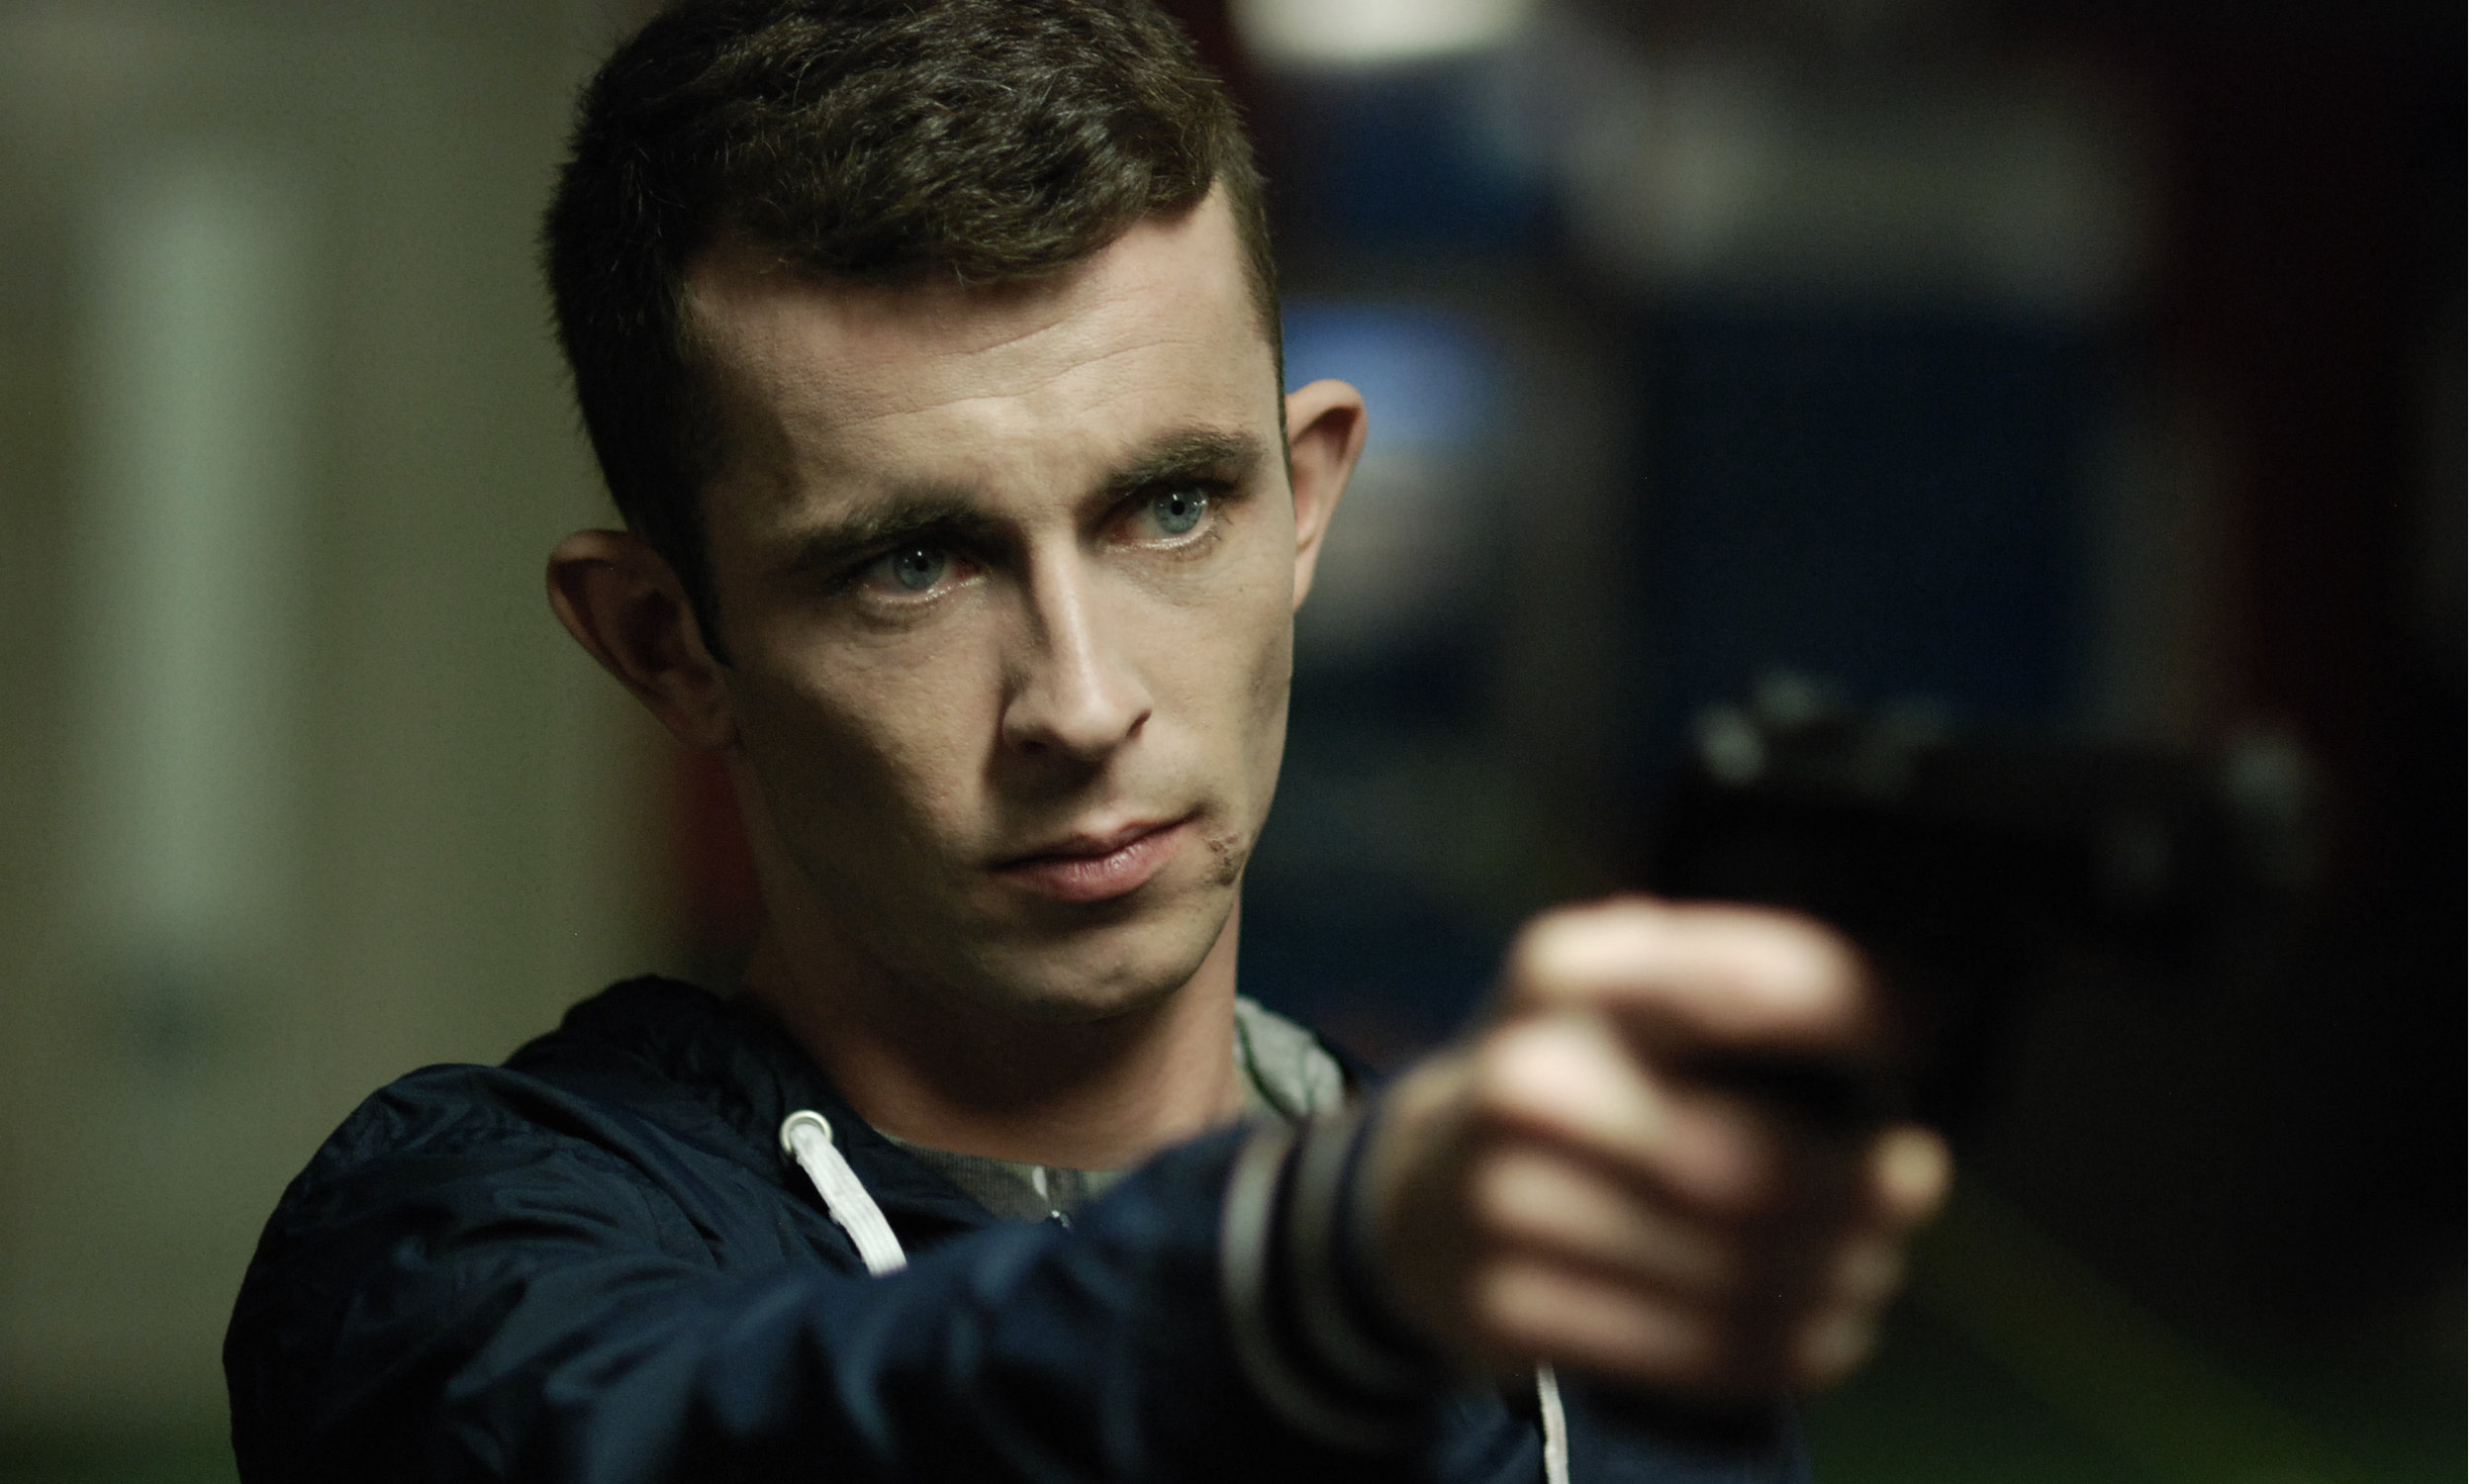 Paul Brannigan in Beyond2.jpg